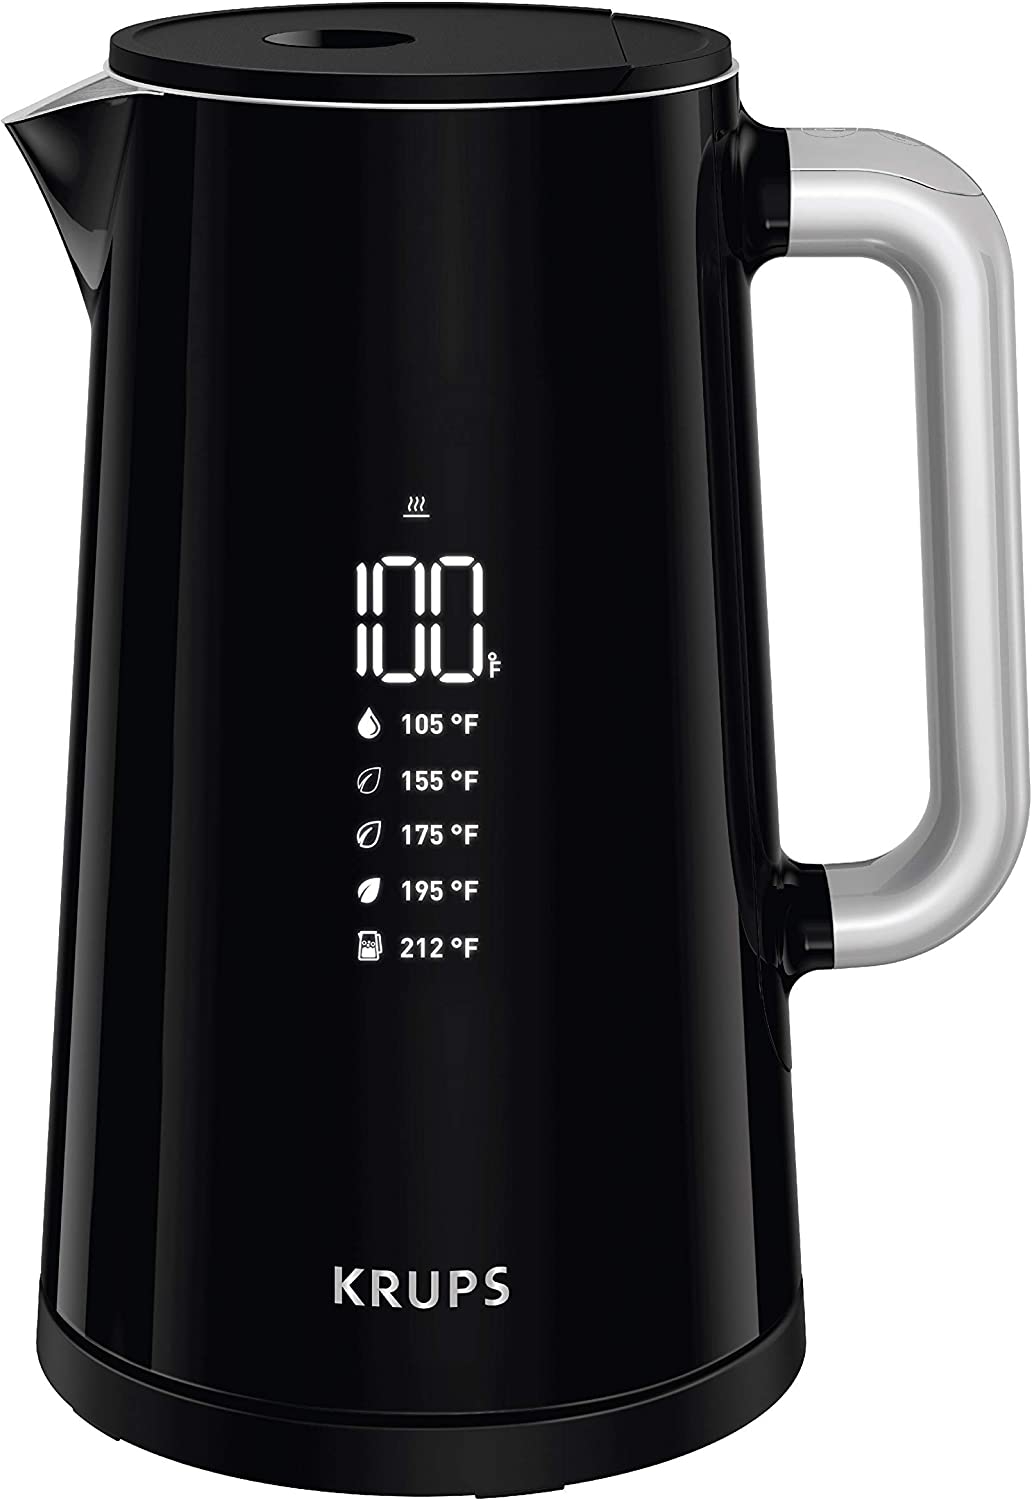 KRUPS BW801852 Smart Temp Digital Kettle Full Stainless Interior and Safety Off, 1.7-Liter, Black (Renewed)